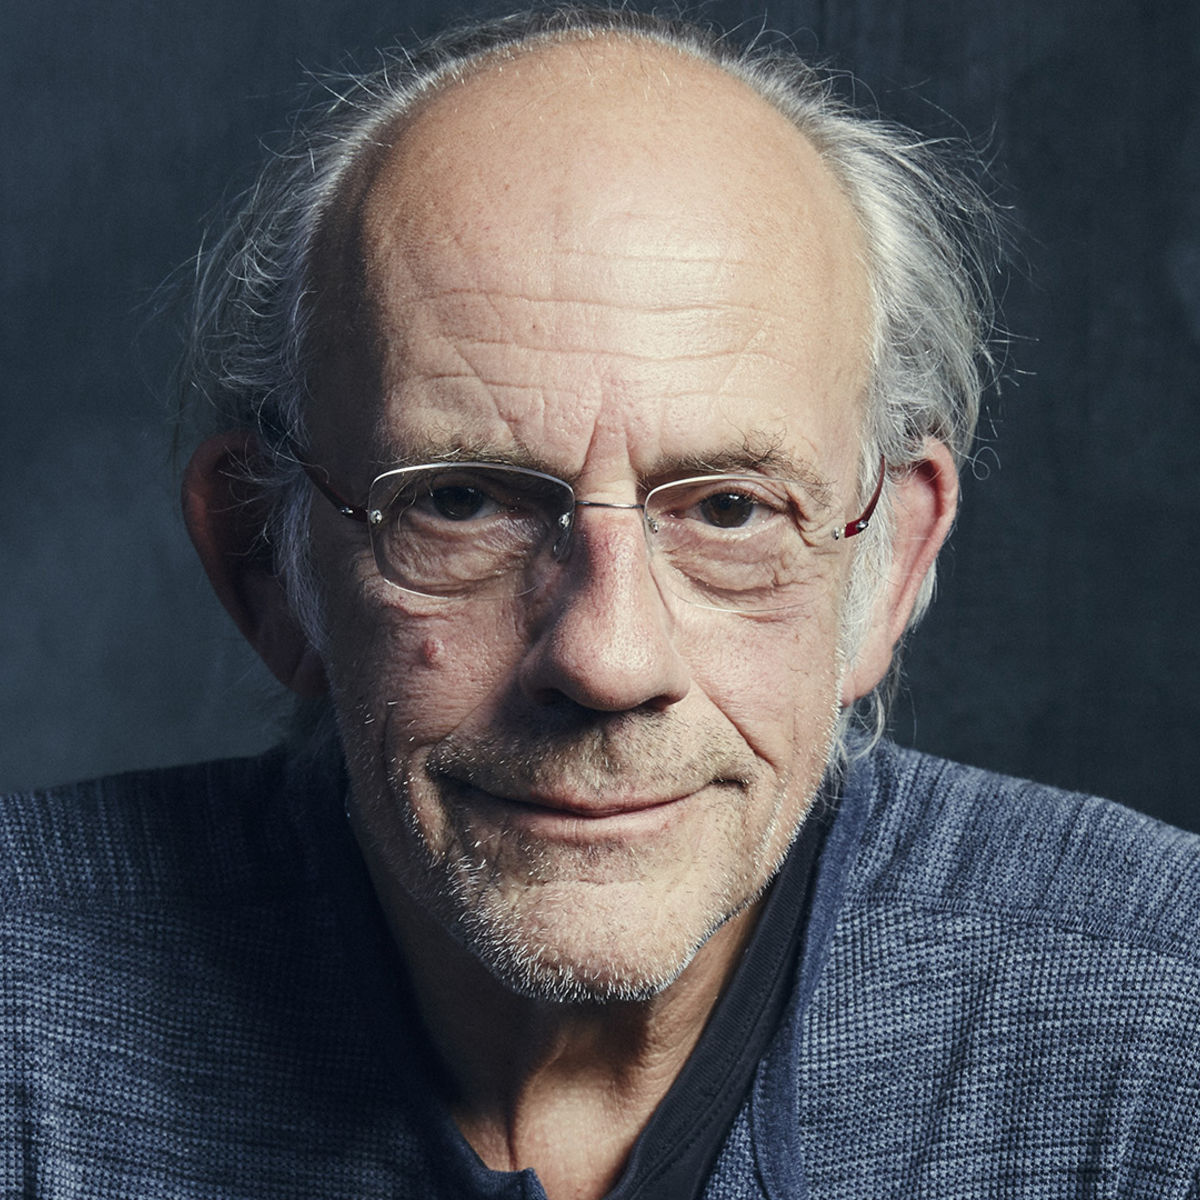 ChristopherLloyd1920x1080.jpg